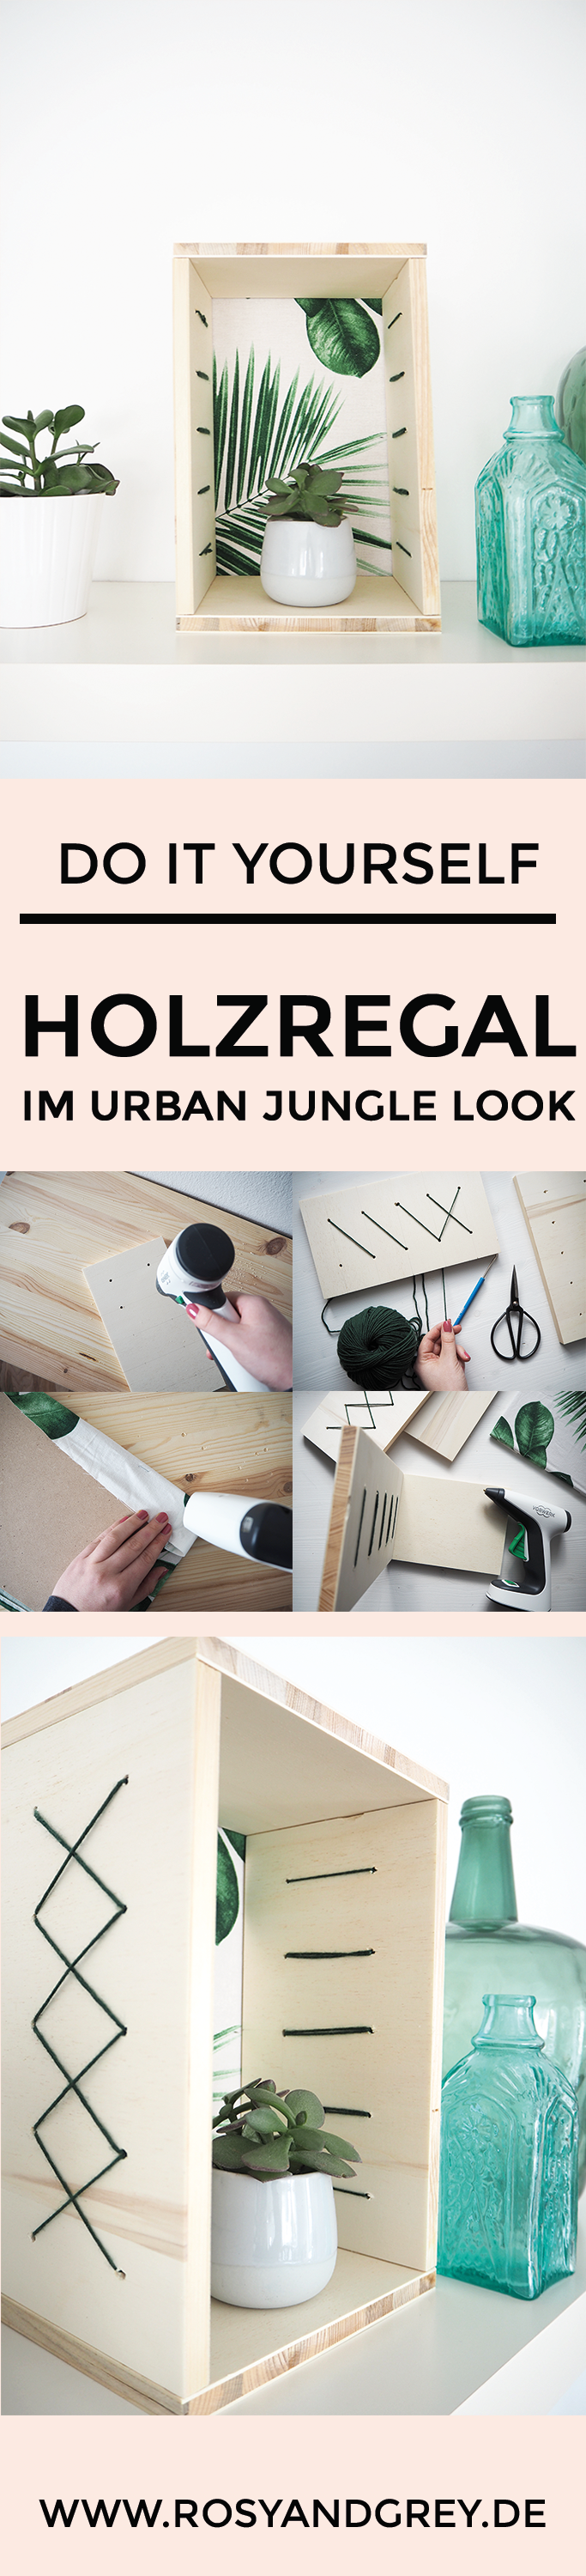 holzregal selberbauen im urban jungle style rosy grey diy blog diy ideen auf deutsch. Black Bedroom Furniture Sets. Home Design Ideas